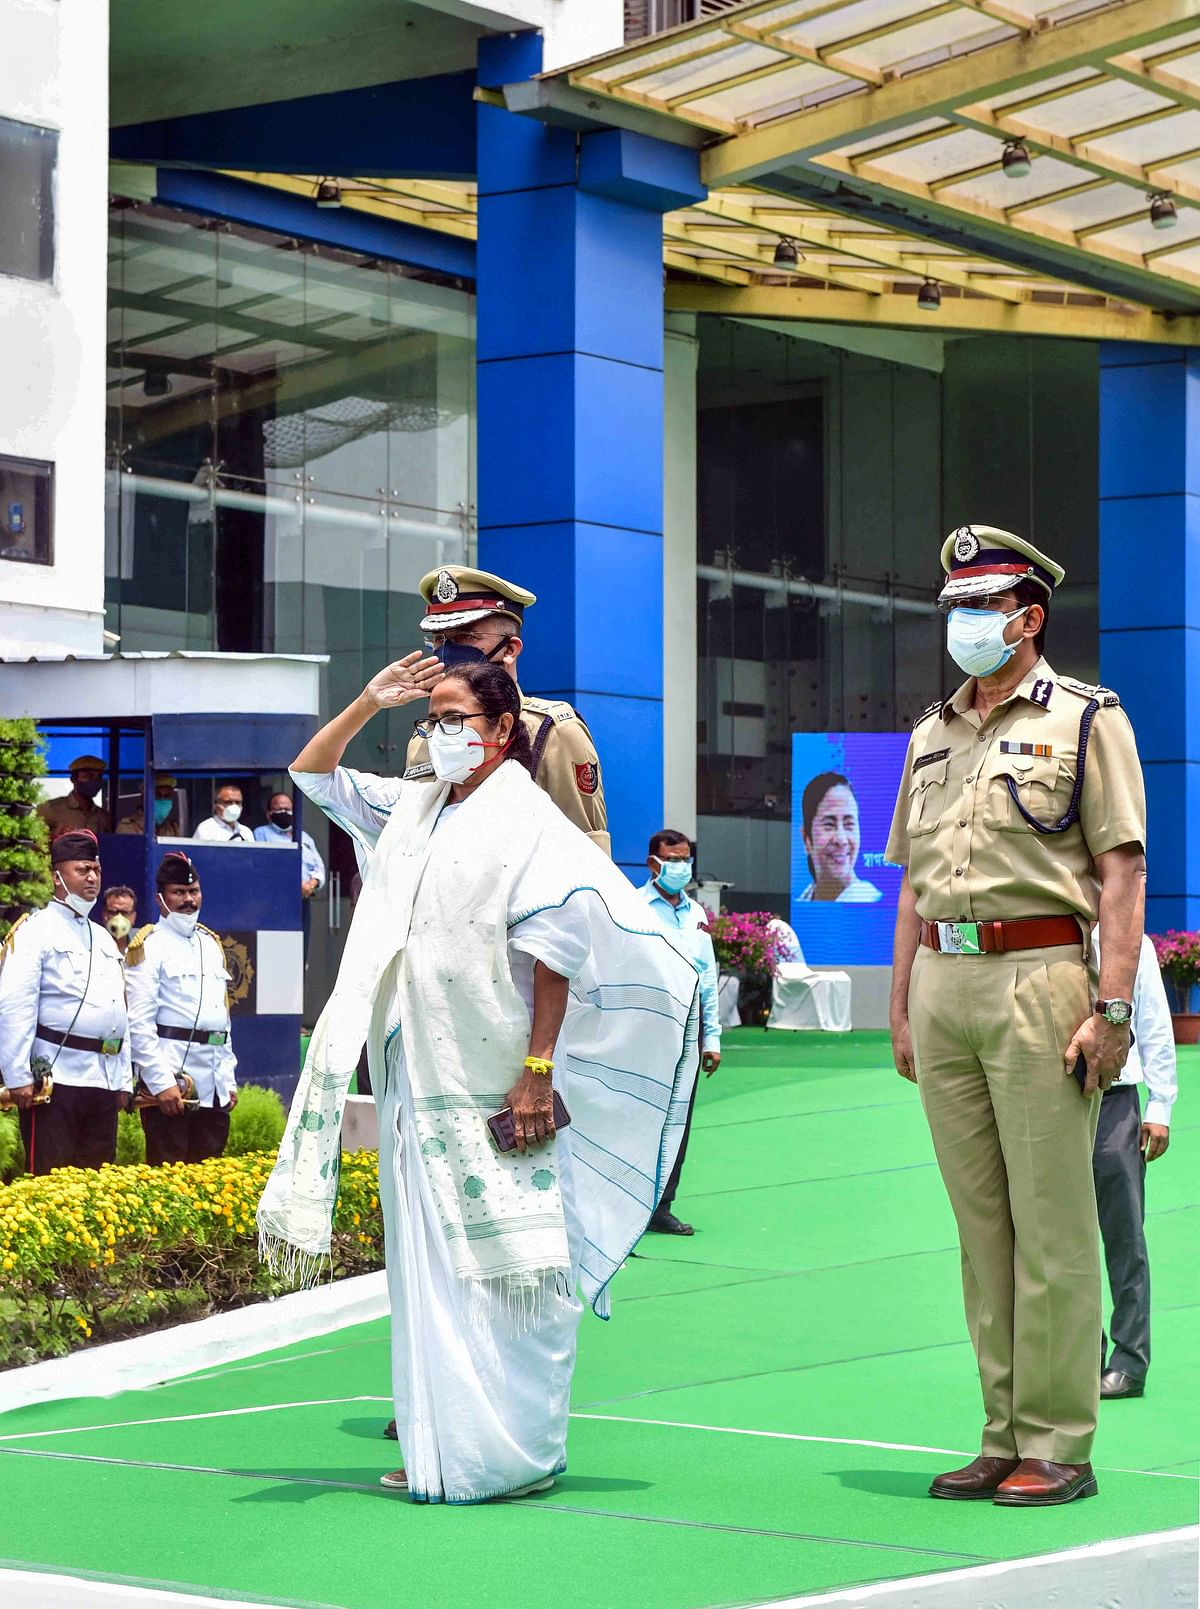 West Bengal Chief Minister Mamata Banerjee inspects a guard of honour on her arrival at her office after her swearing-in ceremony, at Nabanna in Kolkata, Wednesday, May 5, 2021.